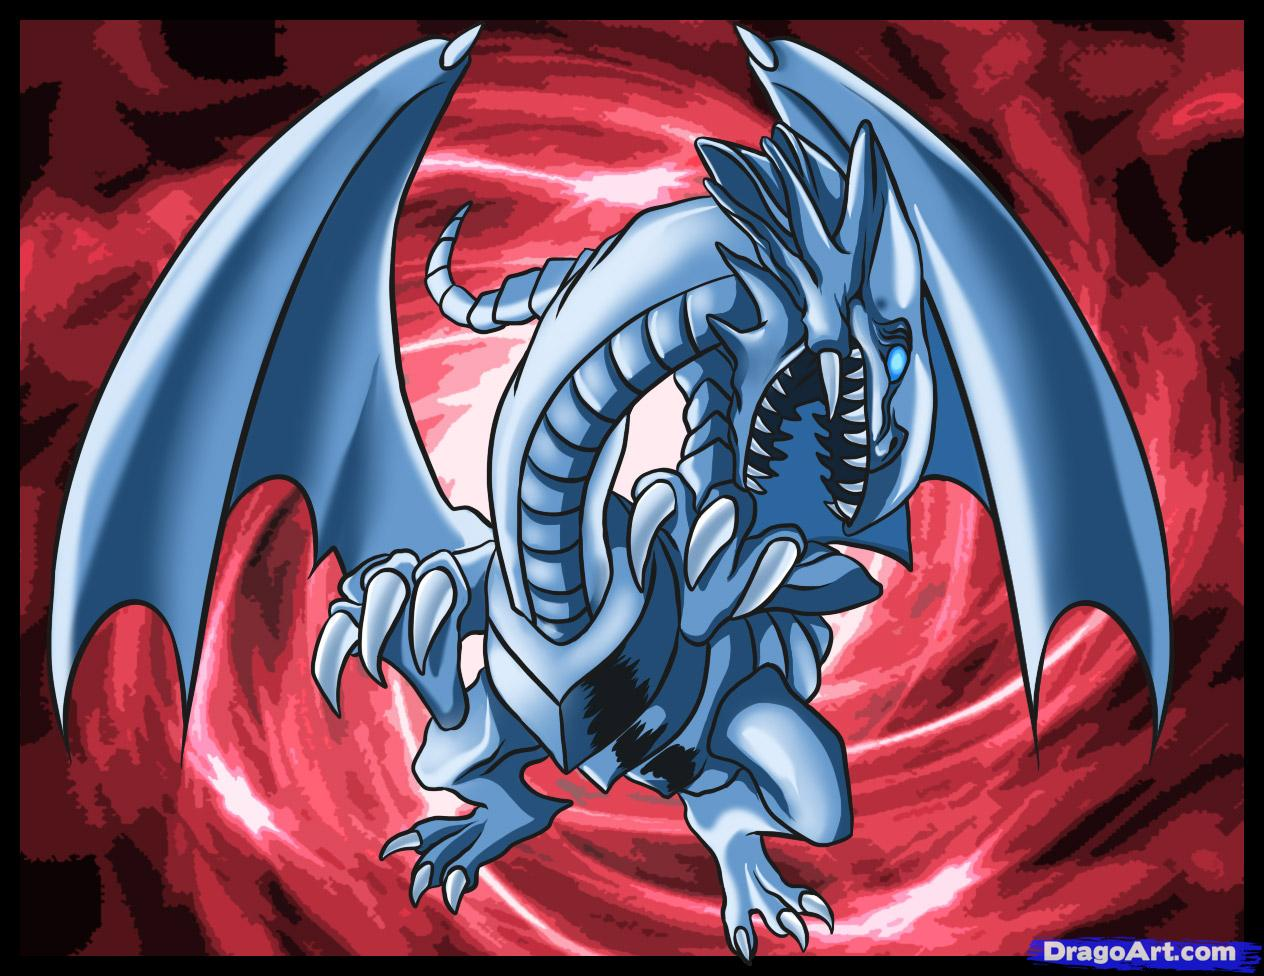 Drawn vampire blue eyed To Step how Step Dragon